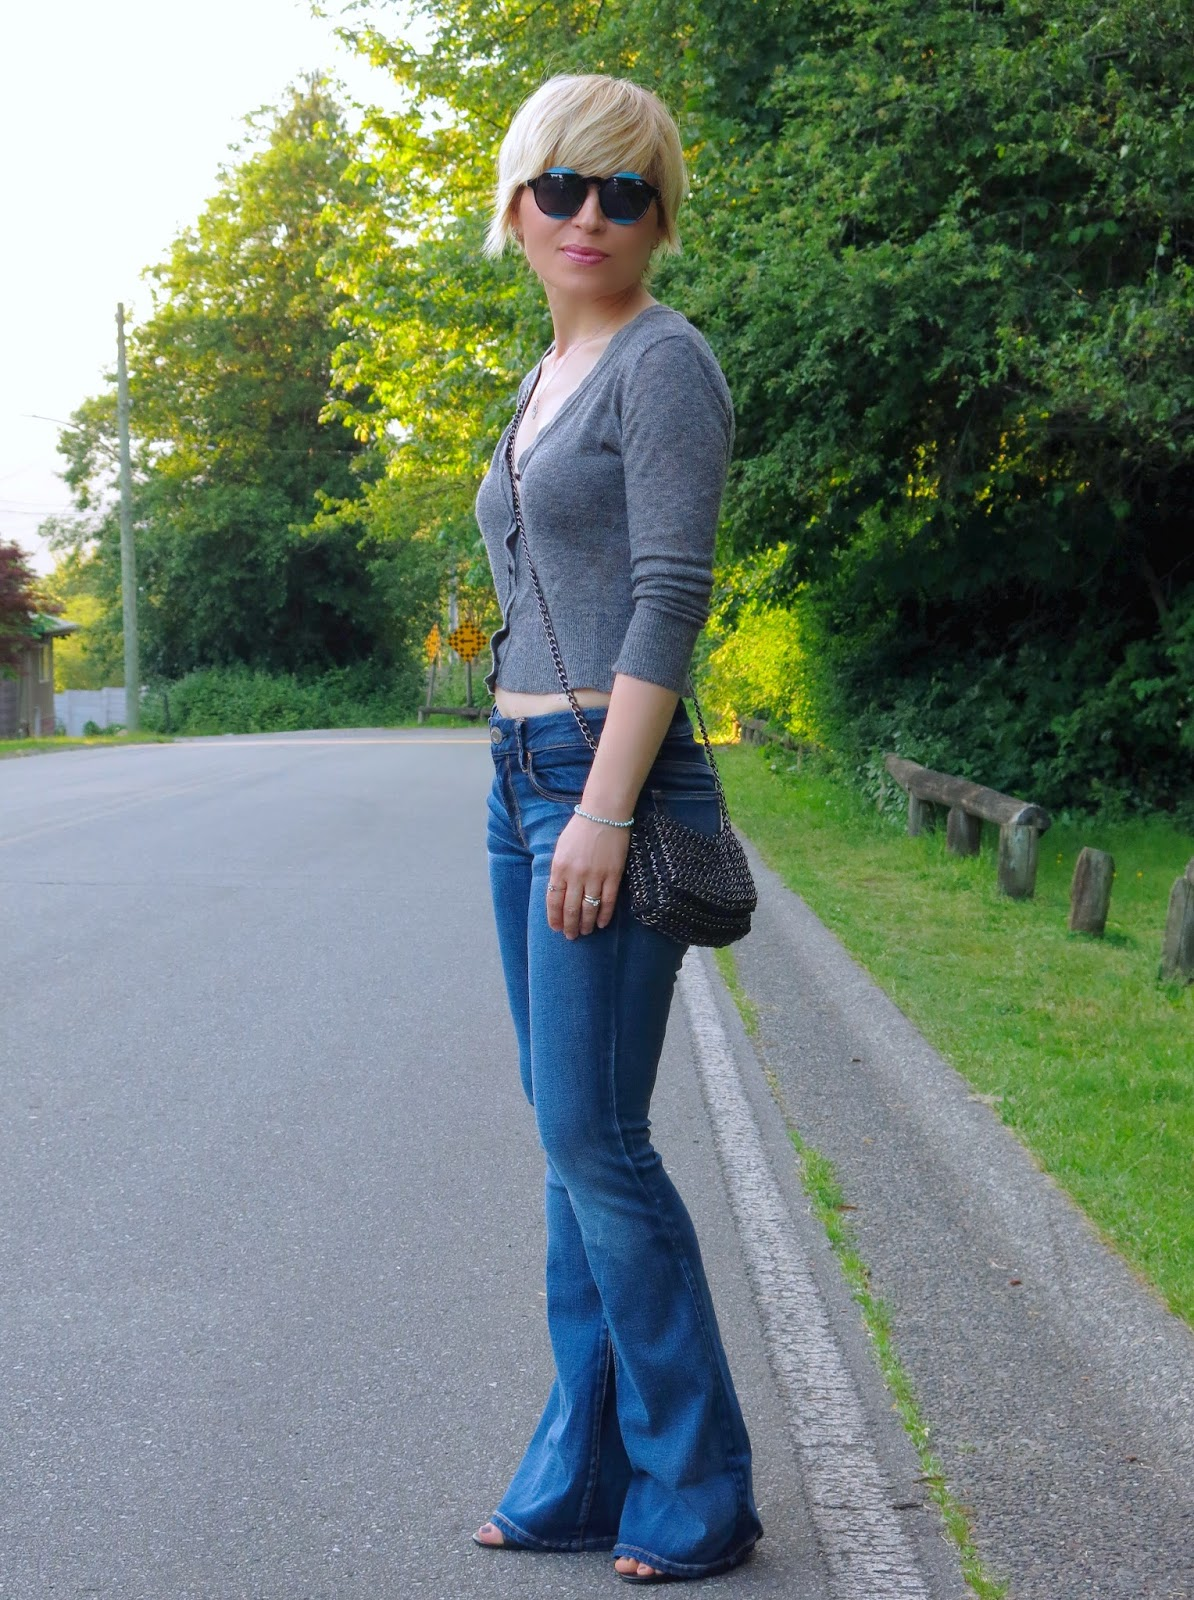 styling flare jeans with a cropped cardigan, cross-body bag, and statement sunglasses